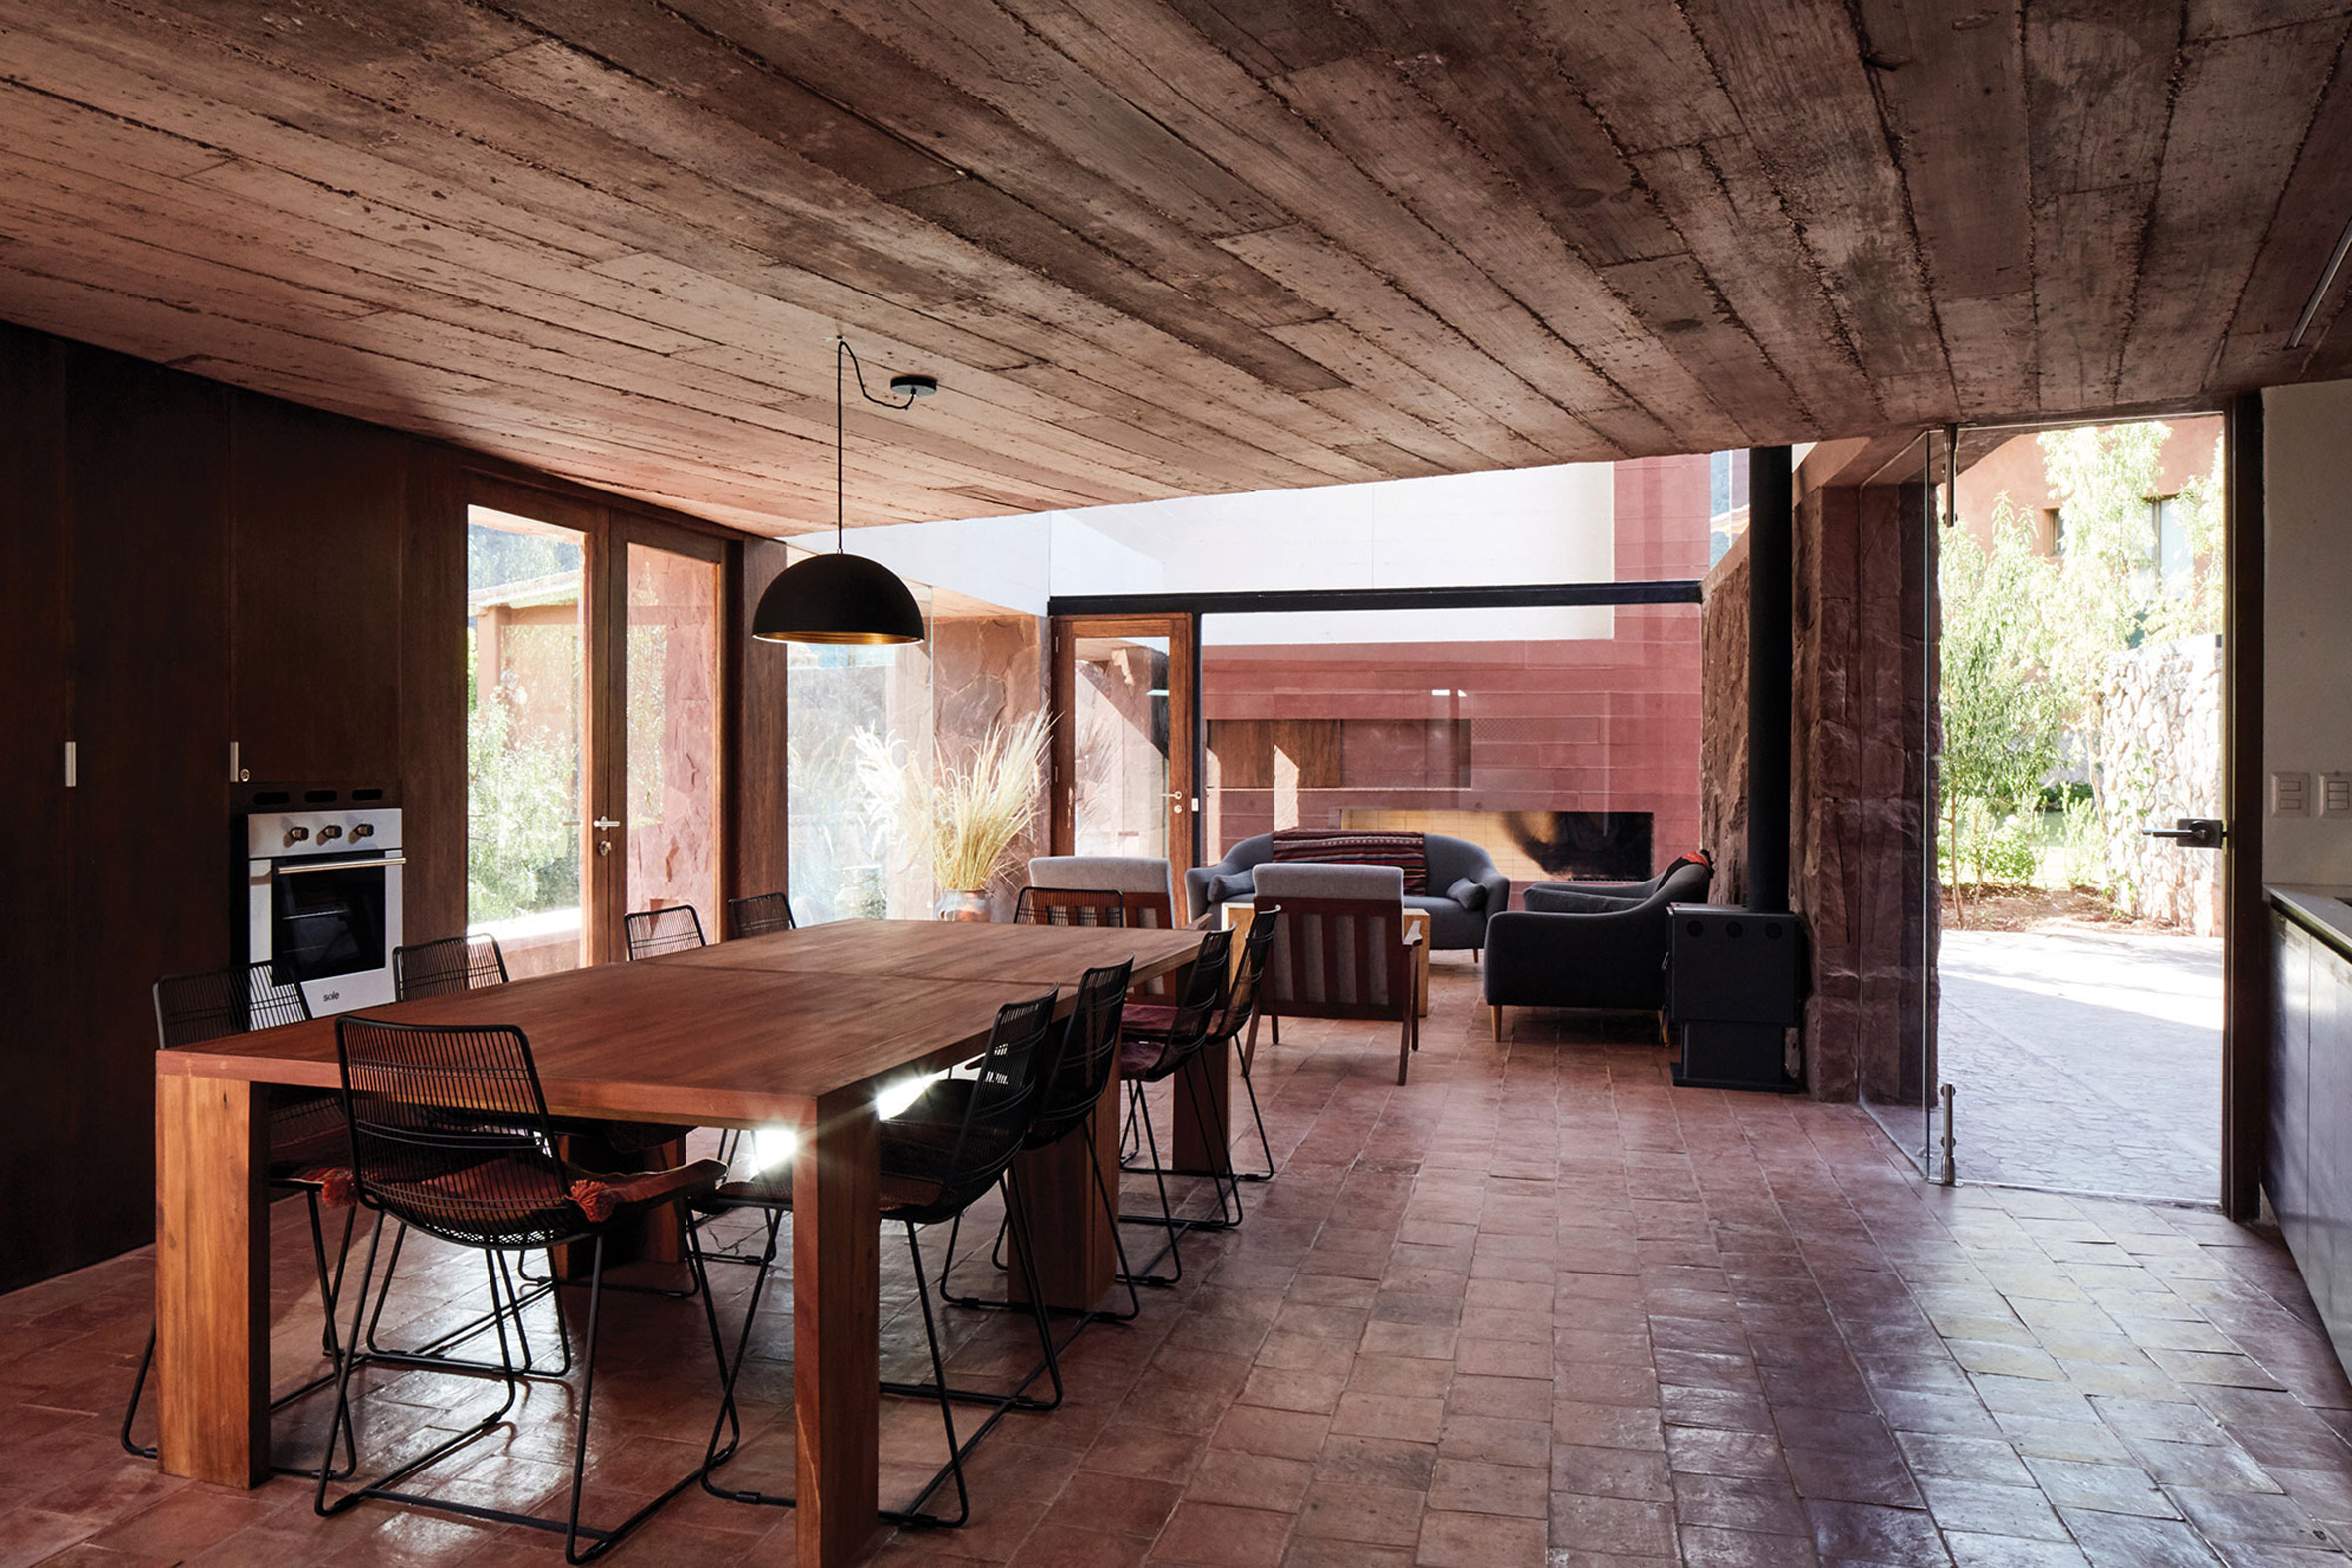 Dining room in Casa Huayoccari by Barclay & Crousse